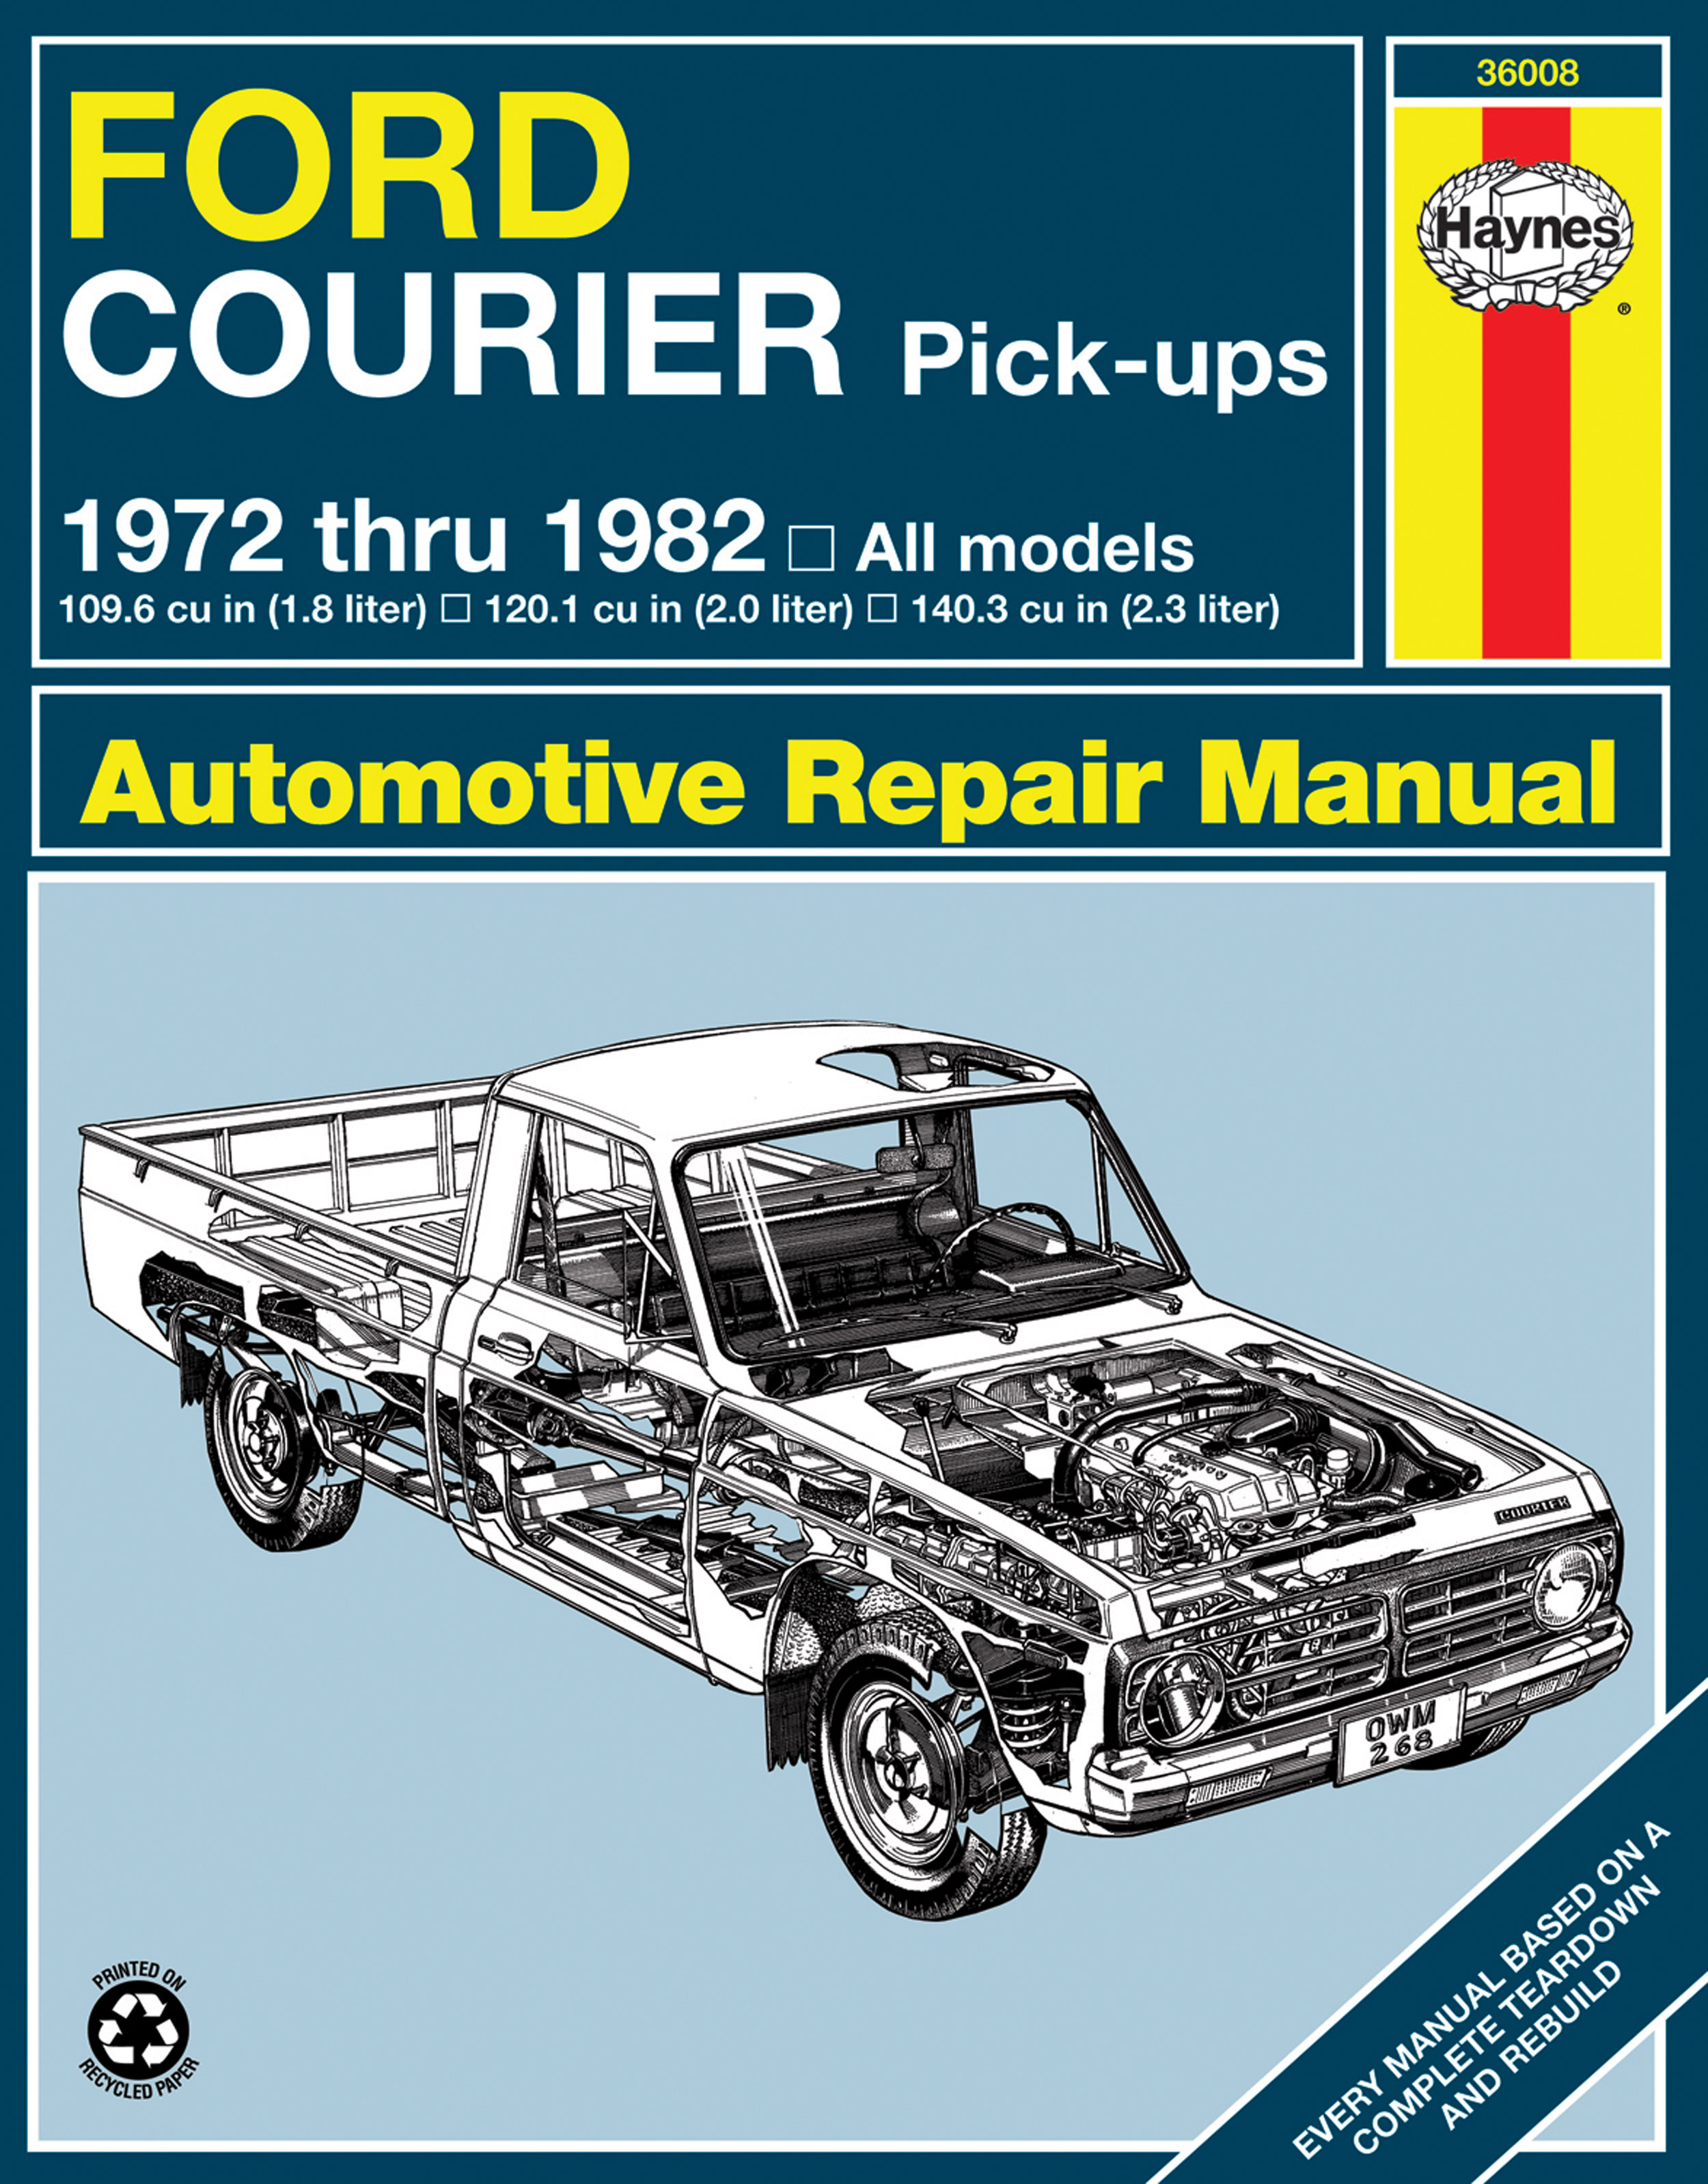 Ford courier repair manual pdf